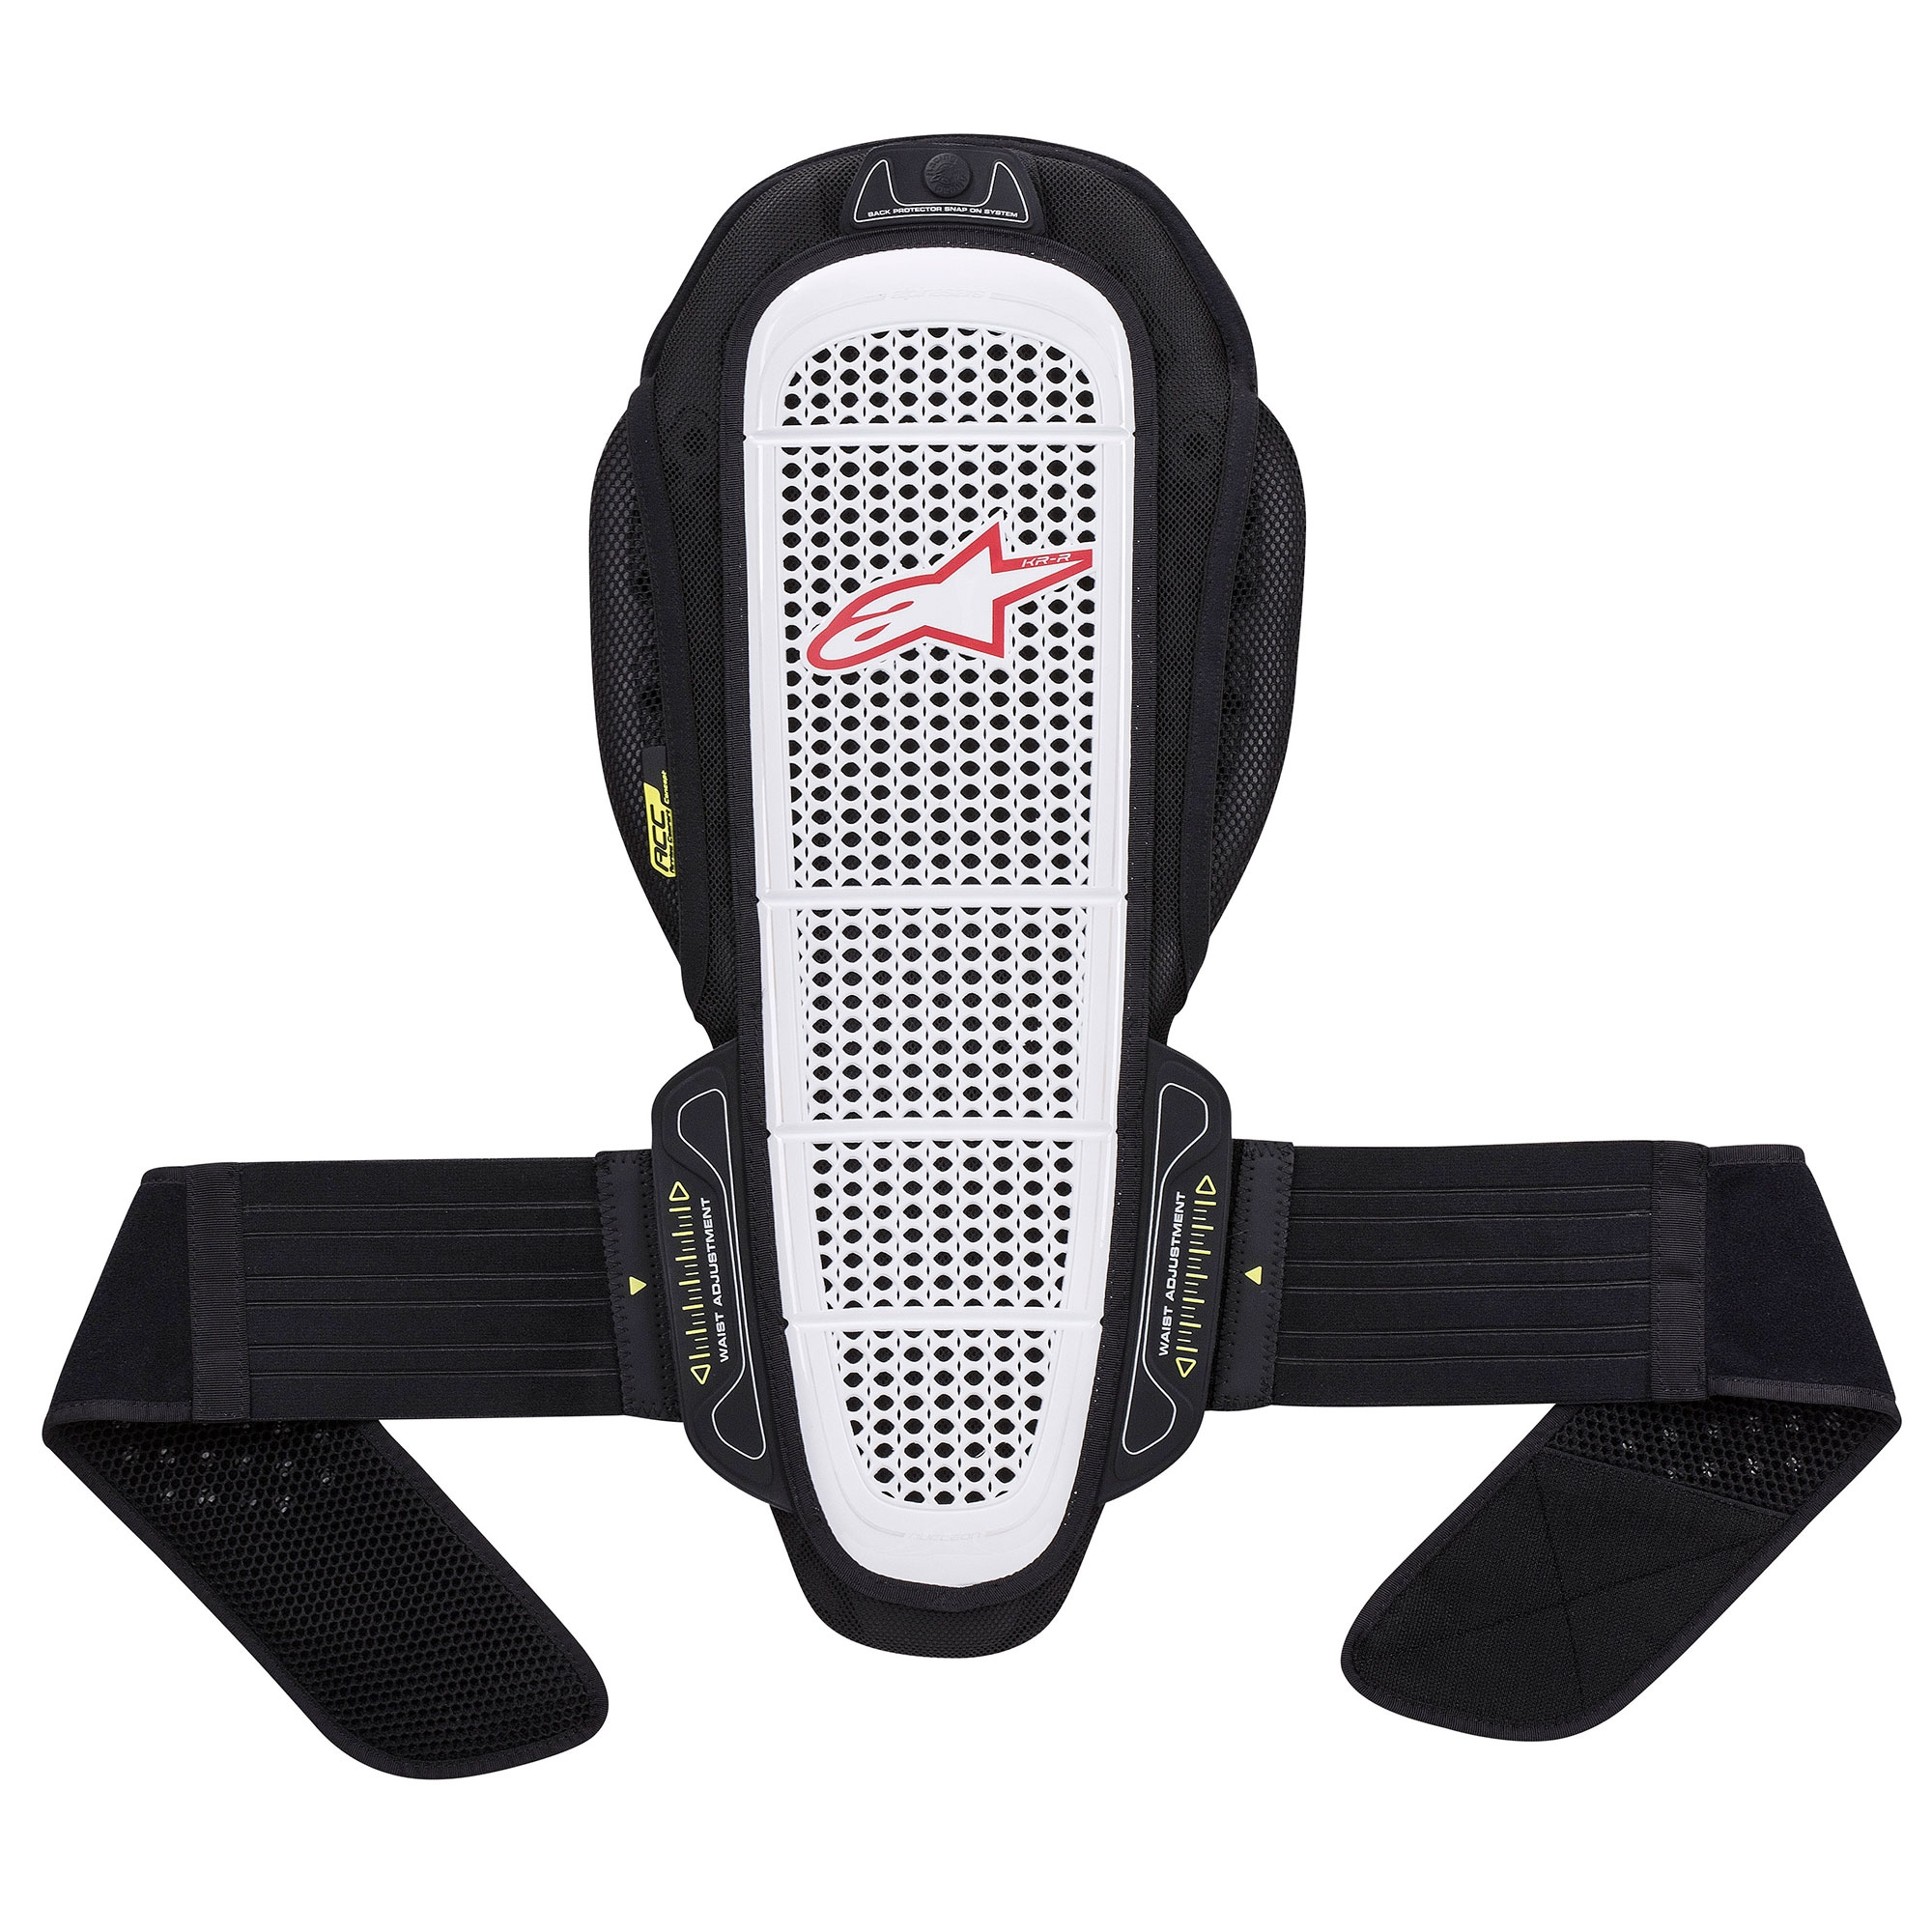 Details about Alpinestars Nucleon KR-R Motorcycle / Motorbike Snap-On Back  Protector